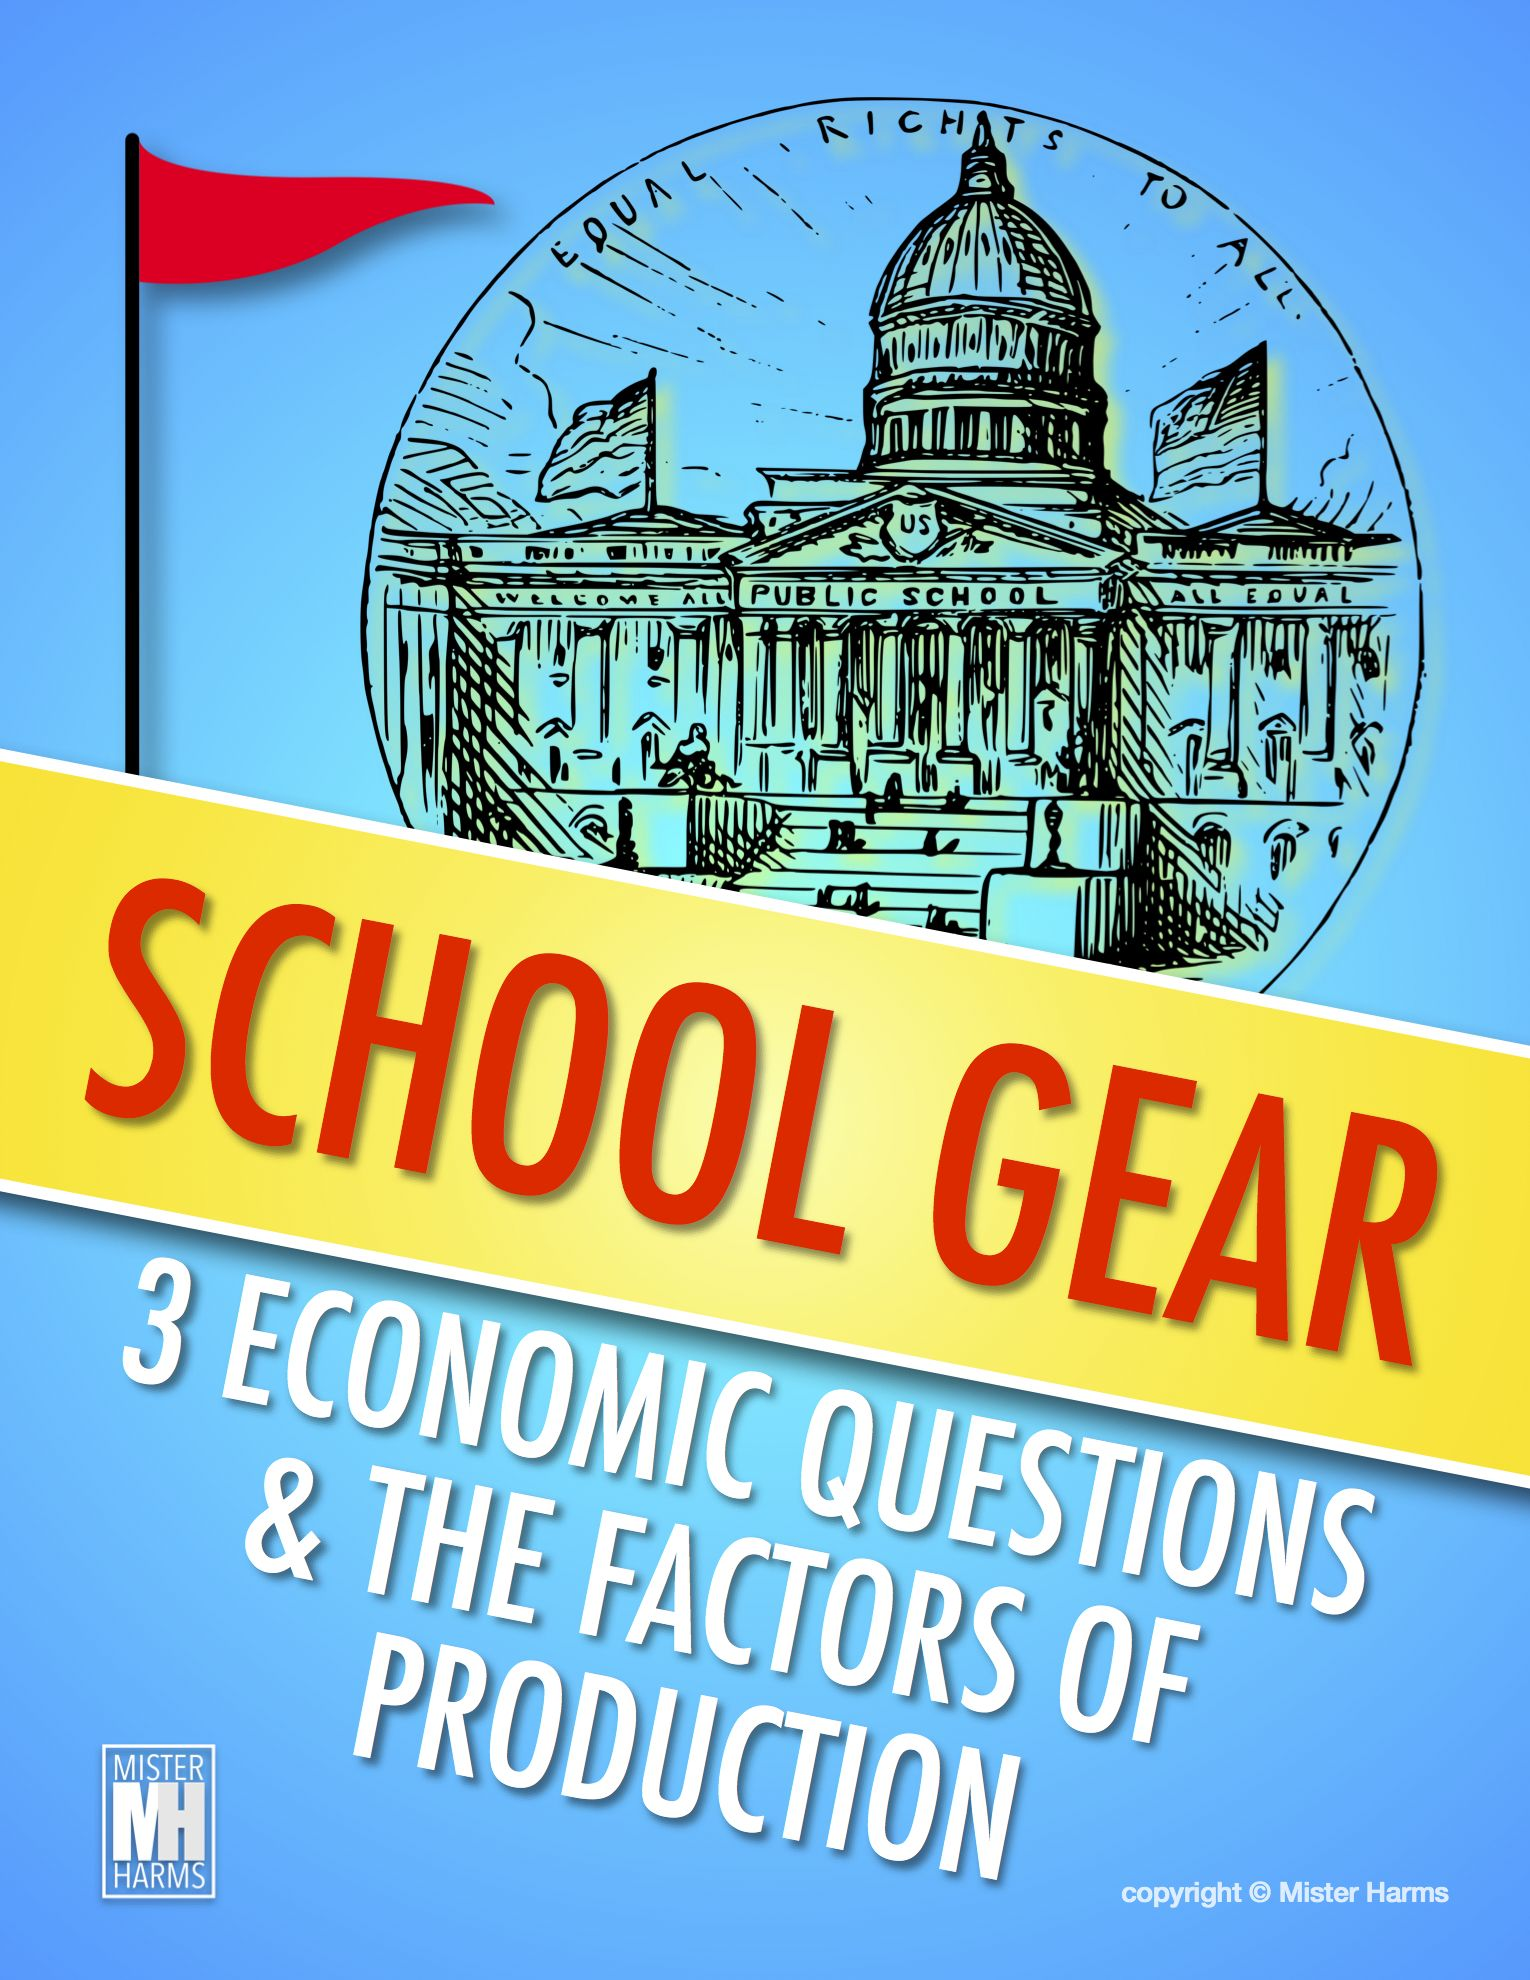 School Gear 3 Economic Questions And The Factors Of